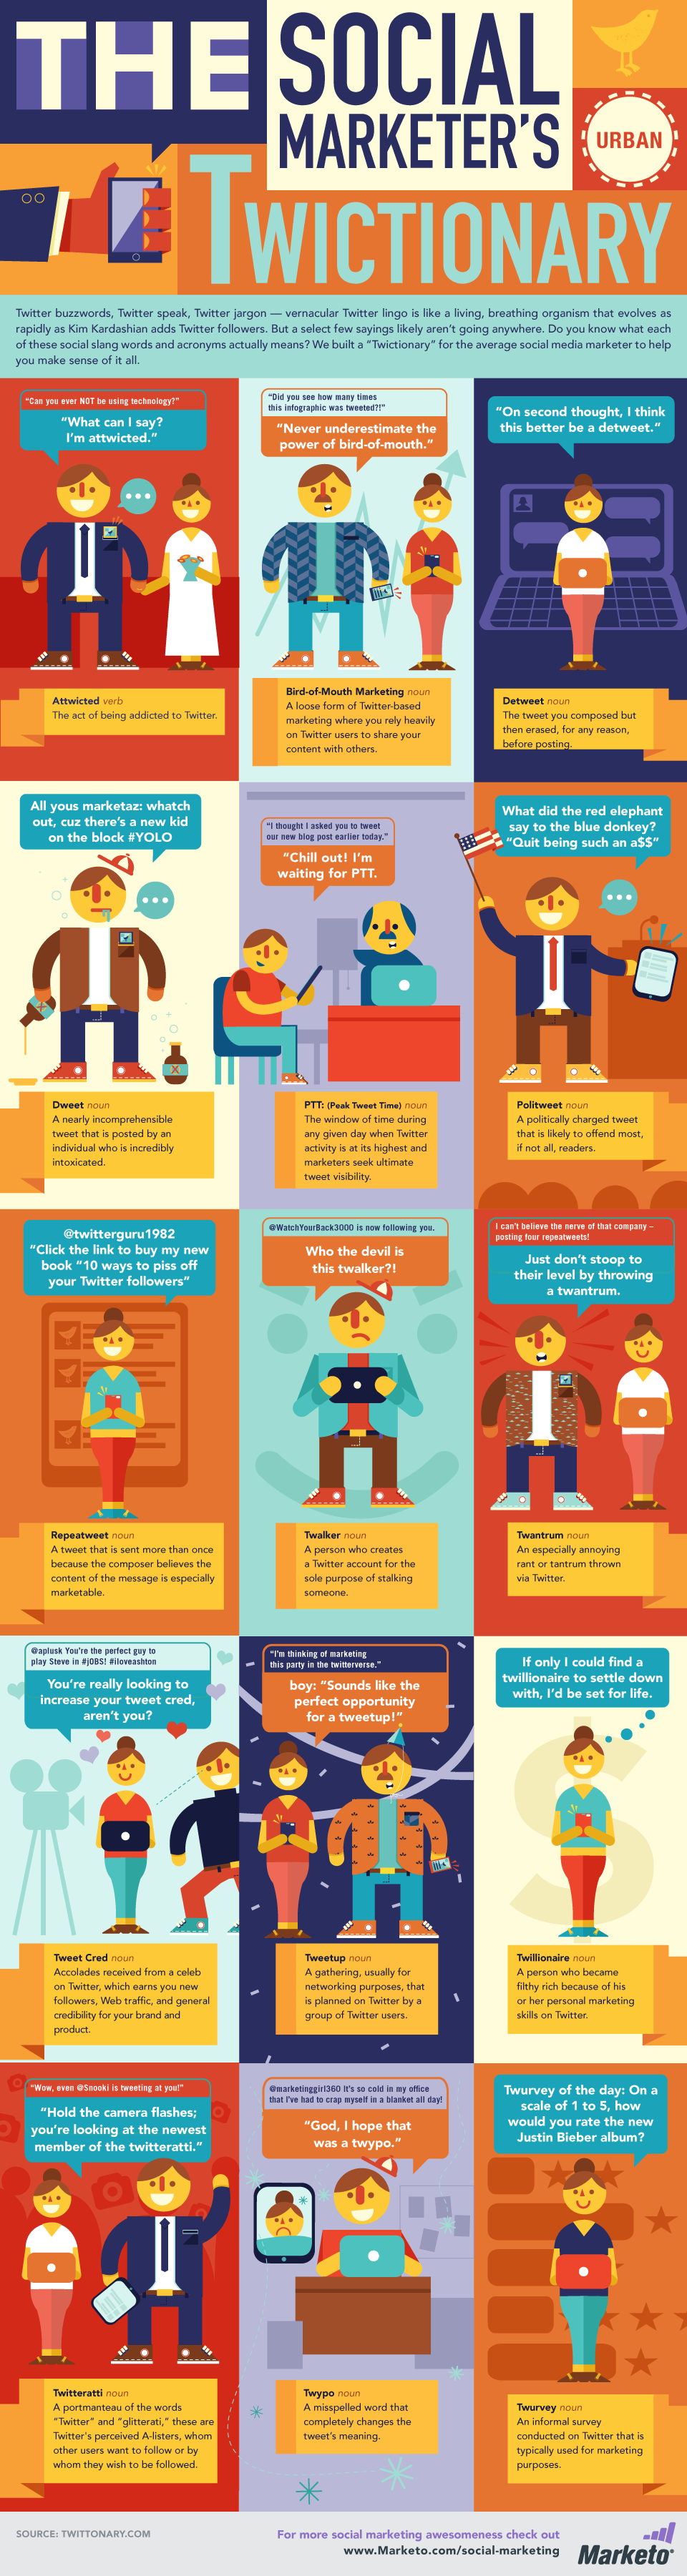 Need a twictionary? If you want to learn Twitter lingo, you just might! Check out this cool infographic and pick up some new Twitter terms.